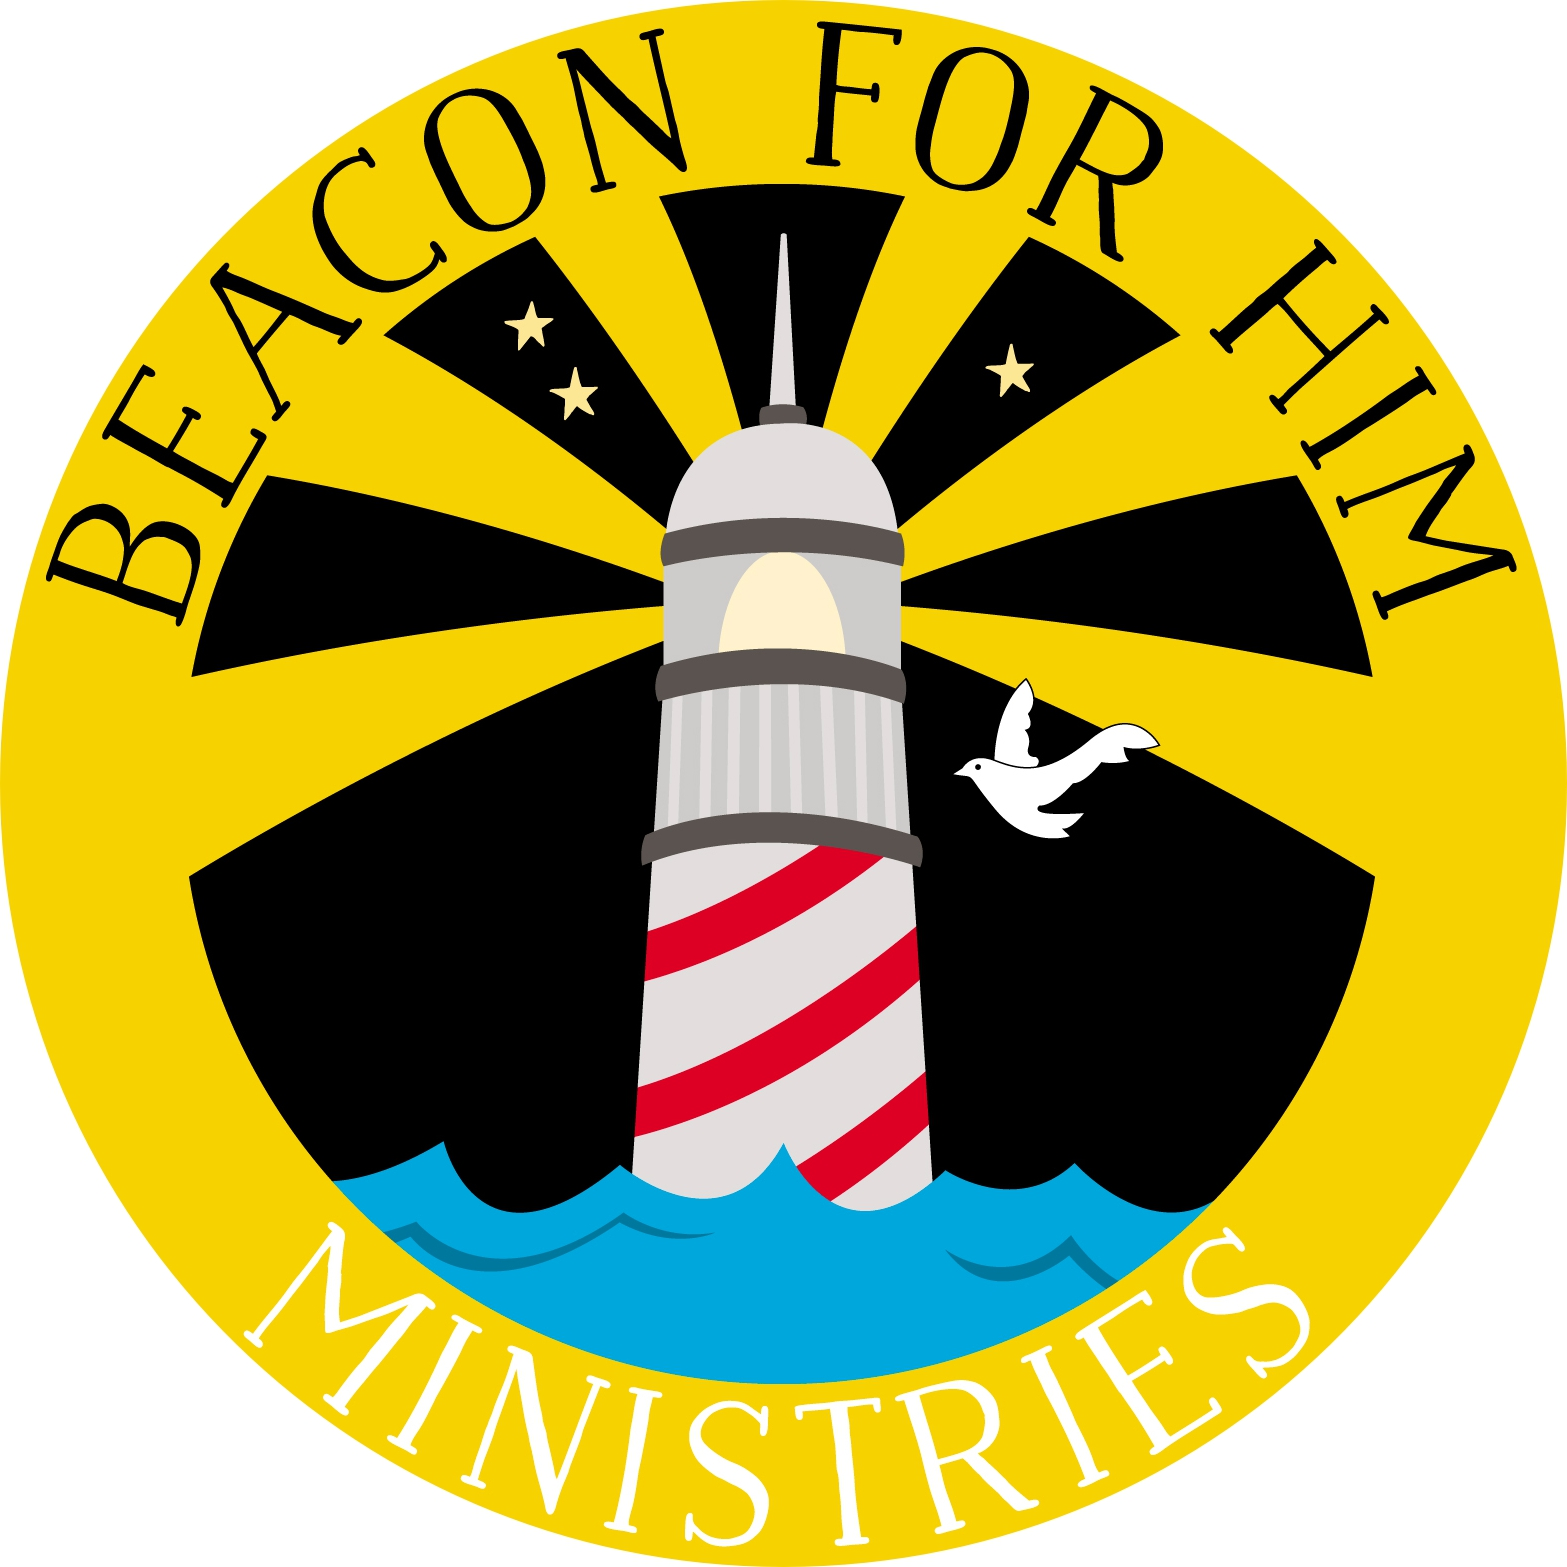 Beacon for Him Ministries